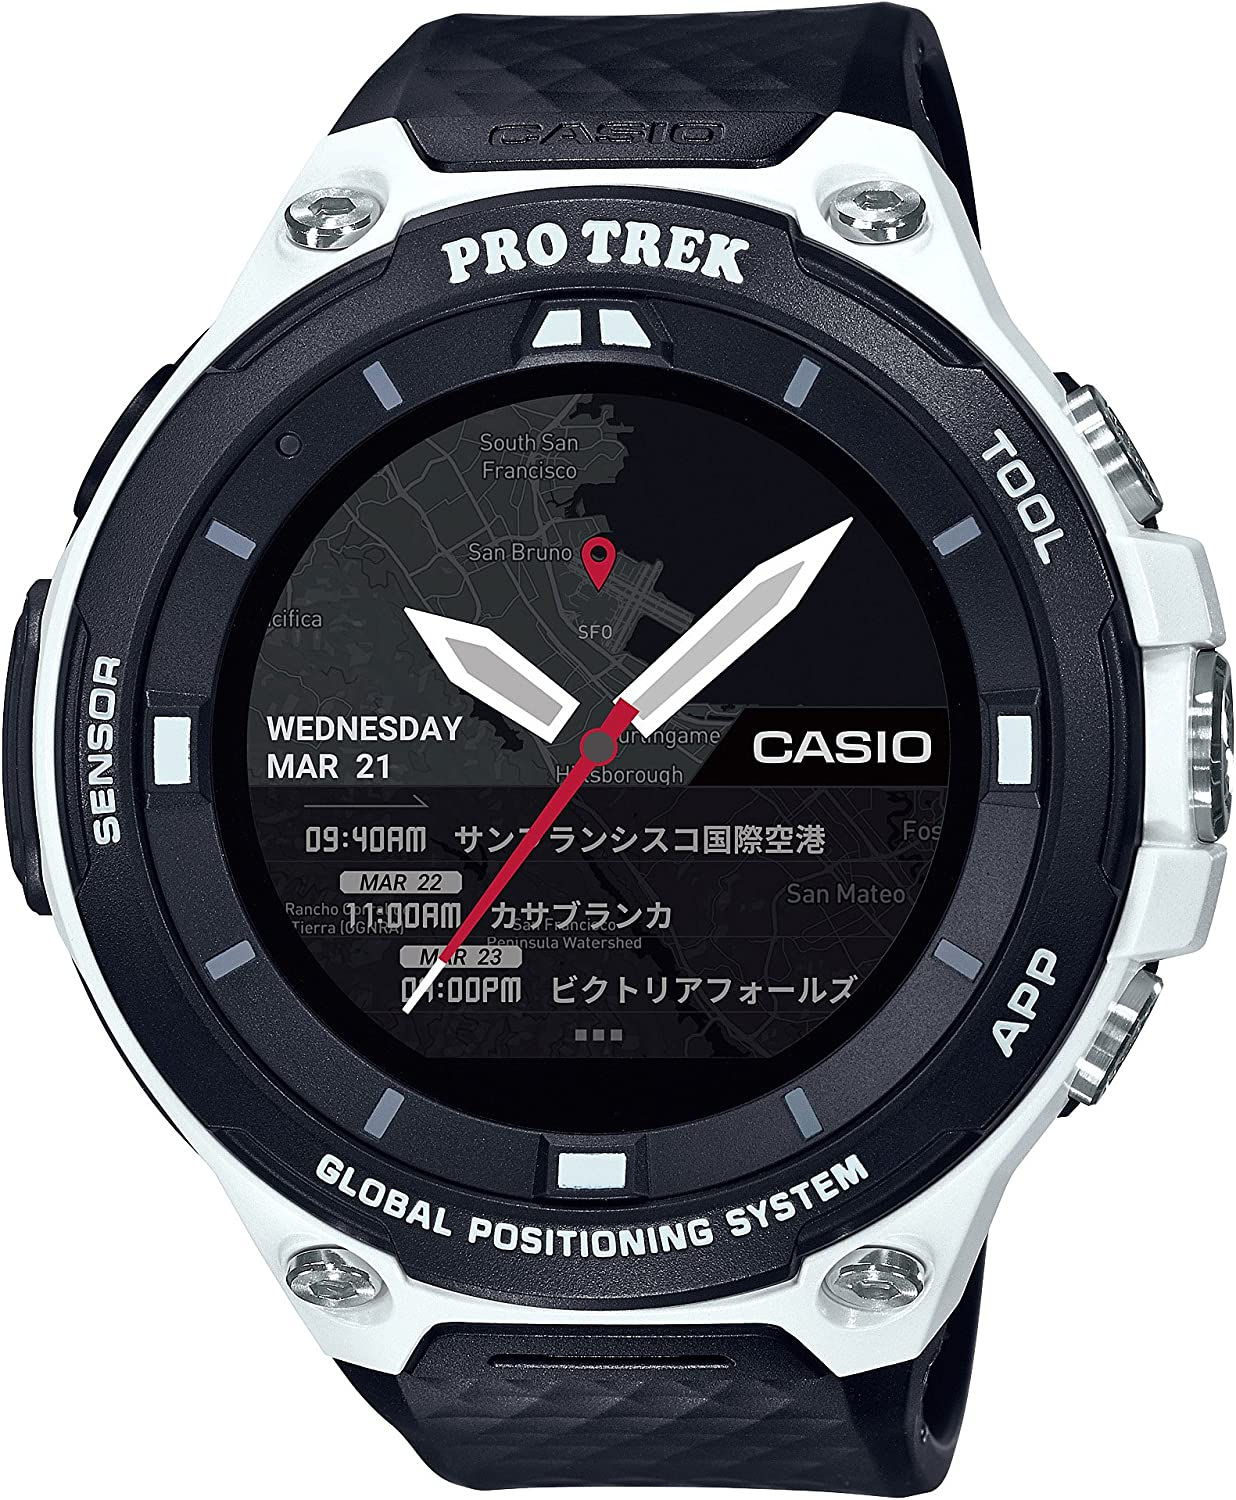 Casio Mens PRO TREK Quartz Resin Outdoor Smartwatch, Color Black (Model: WSD-F20-WECAU)